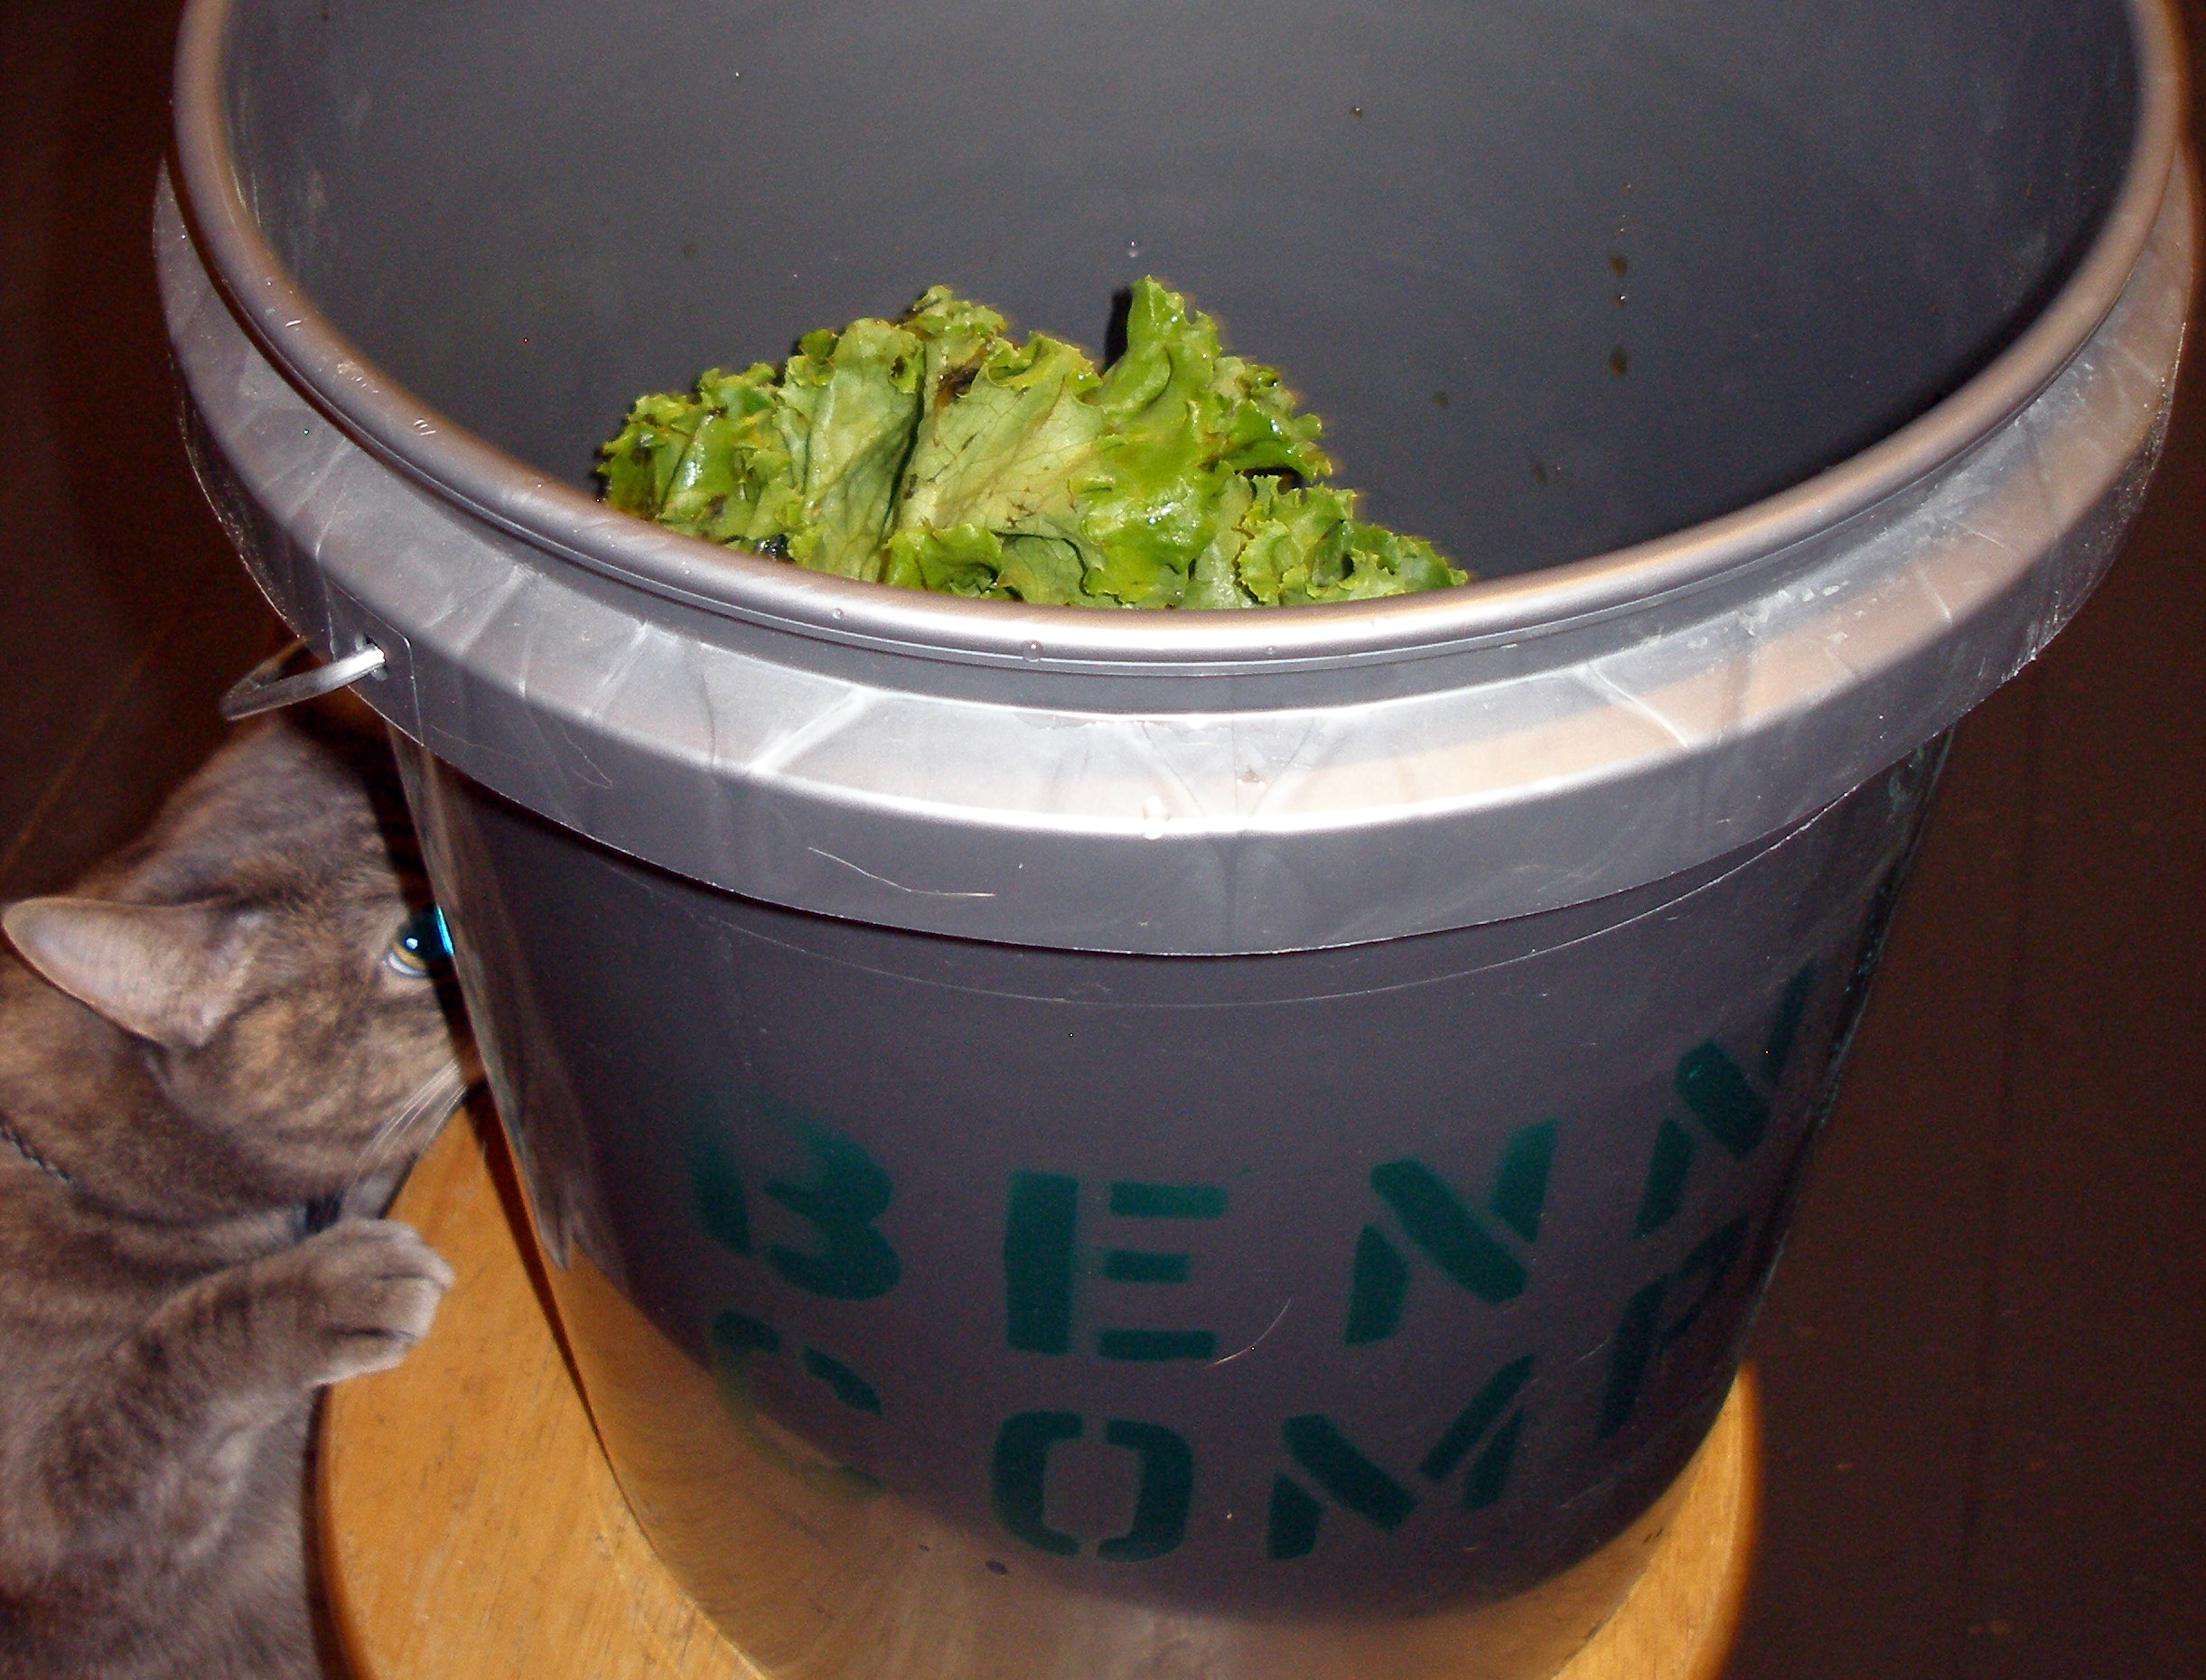 Bennet's Compost